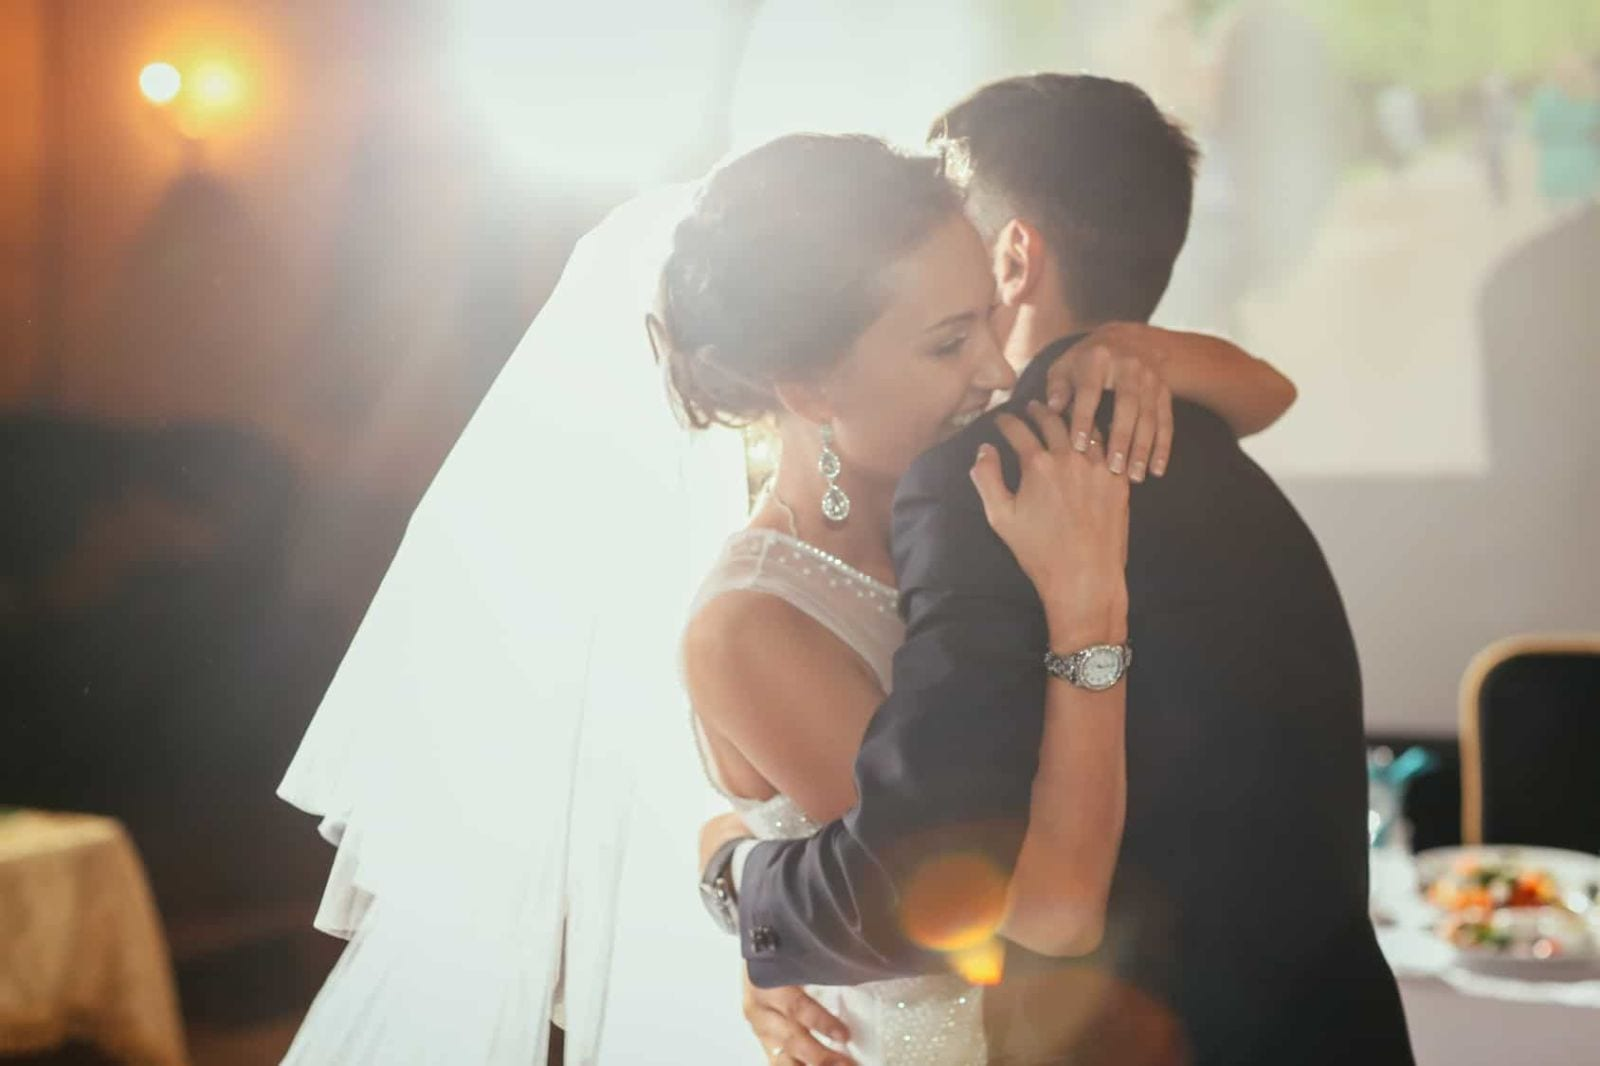 The Most Popular Songs to Choose for Your First Dance